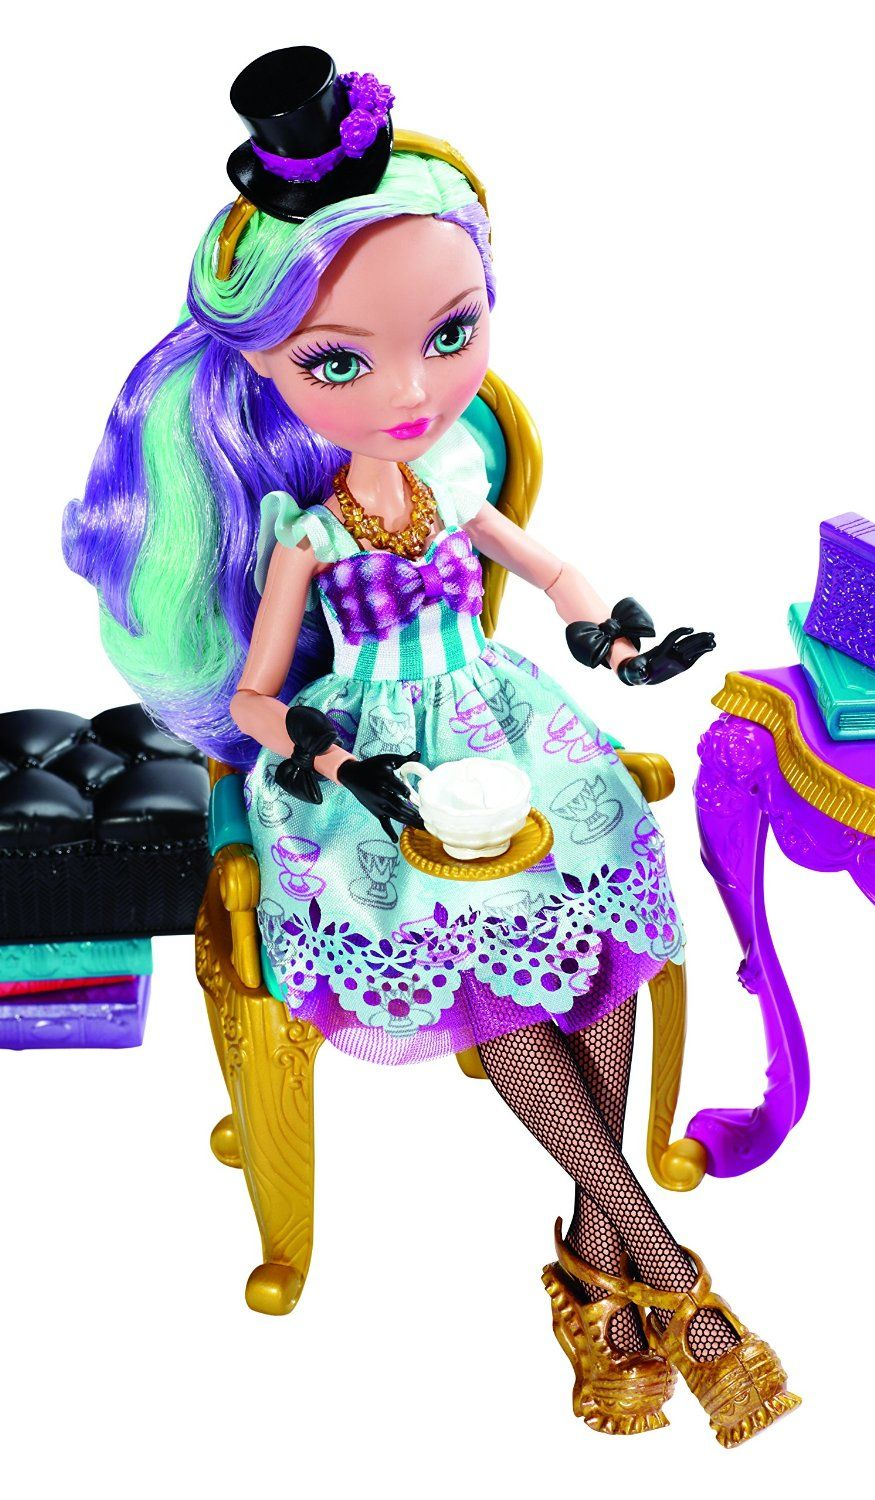 Farraha Goodfairy Extremely Rare Ever After High Discontinued Collectable Sufficient Supply Dolls, Clothing & Accessories Ever After High